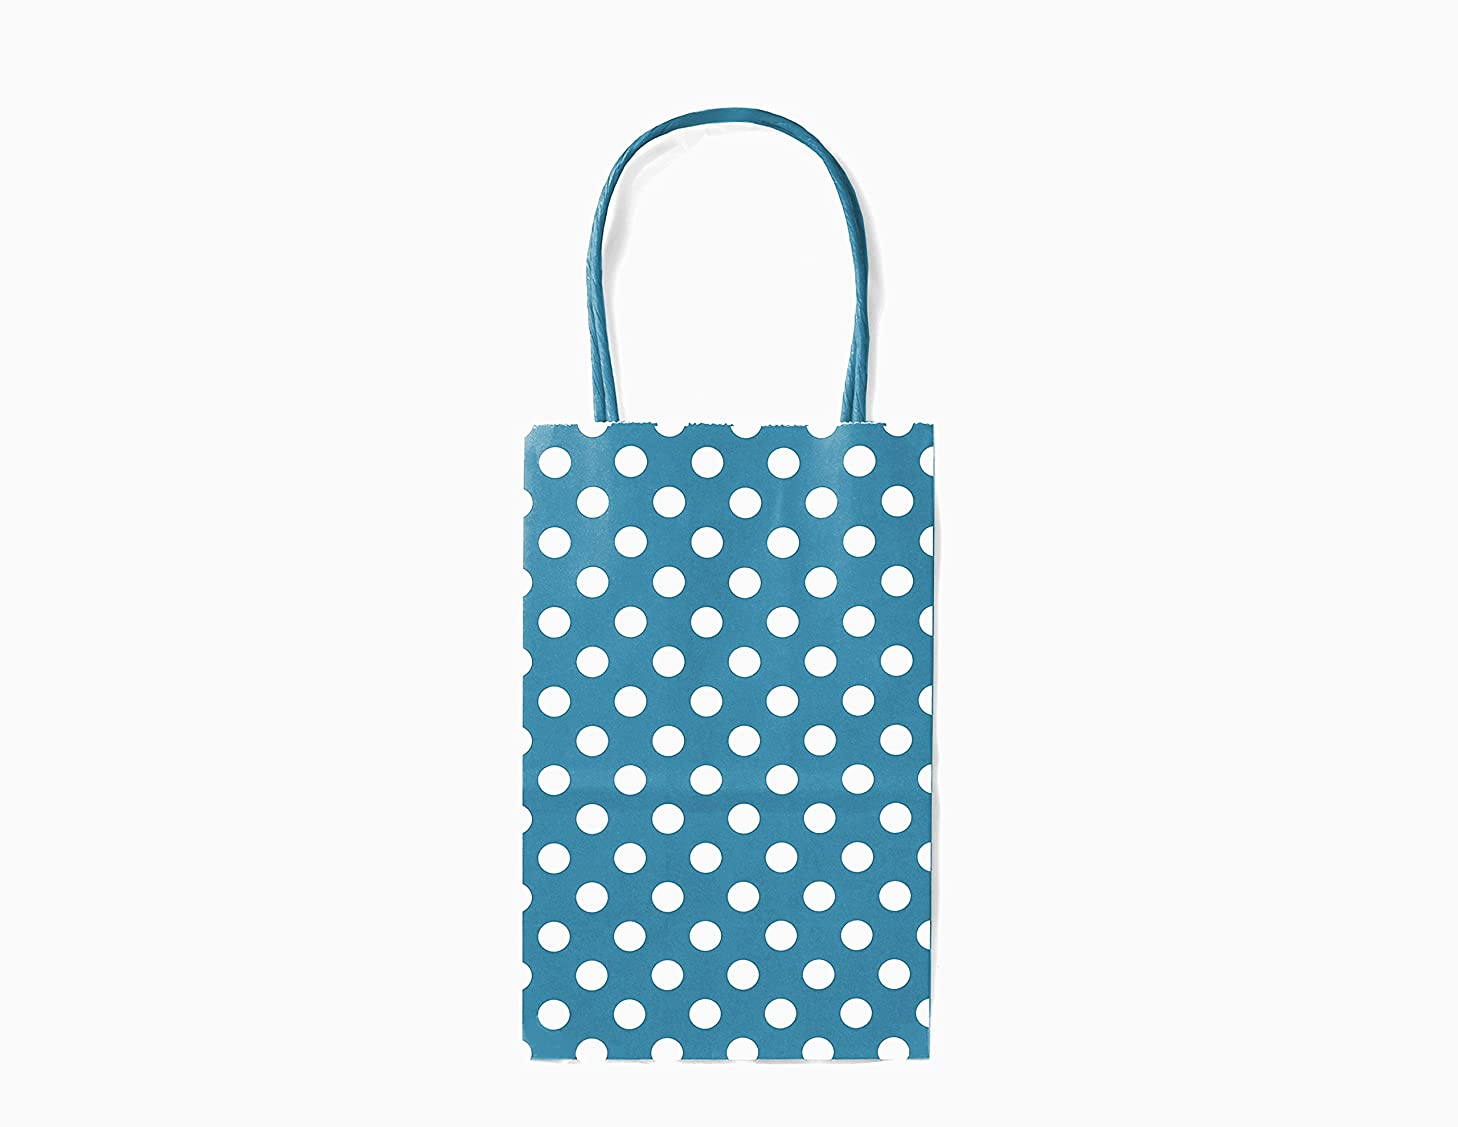 12CT Small Turquoise Polka DOT Biodegradable, Food Safe Ink & Paper, Premium Quality Paper (Sturdy & Thicker), Kraft Bag with Colored Sturdy Handle (Small, P.Turquoise)